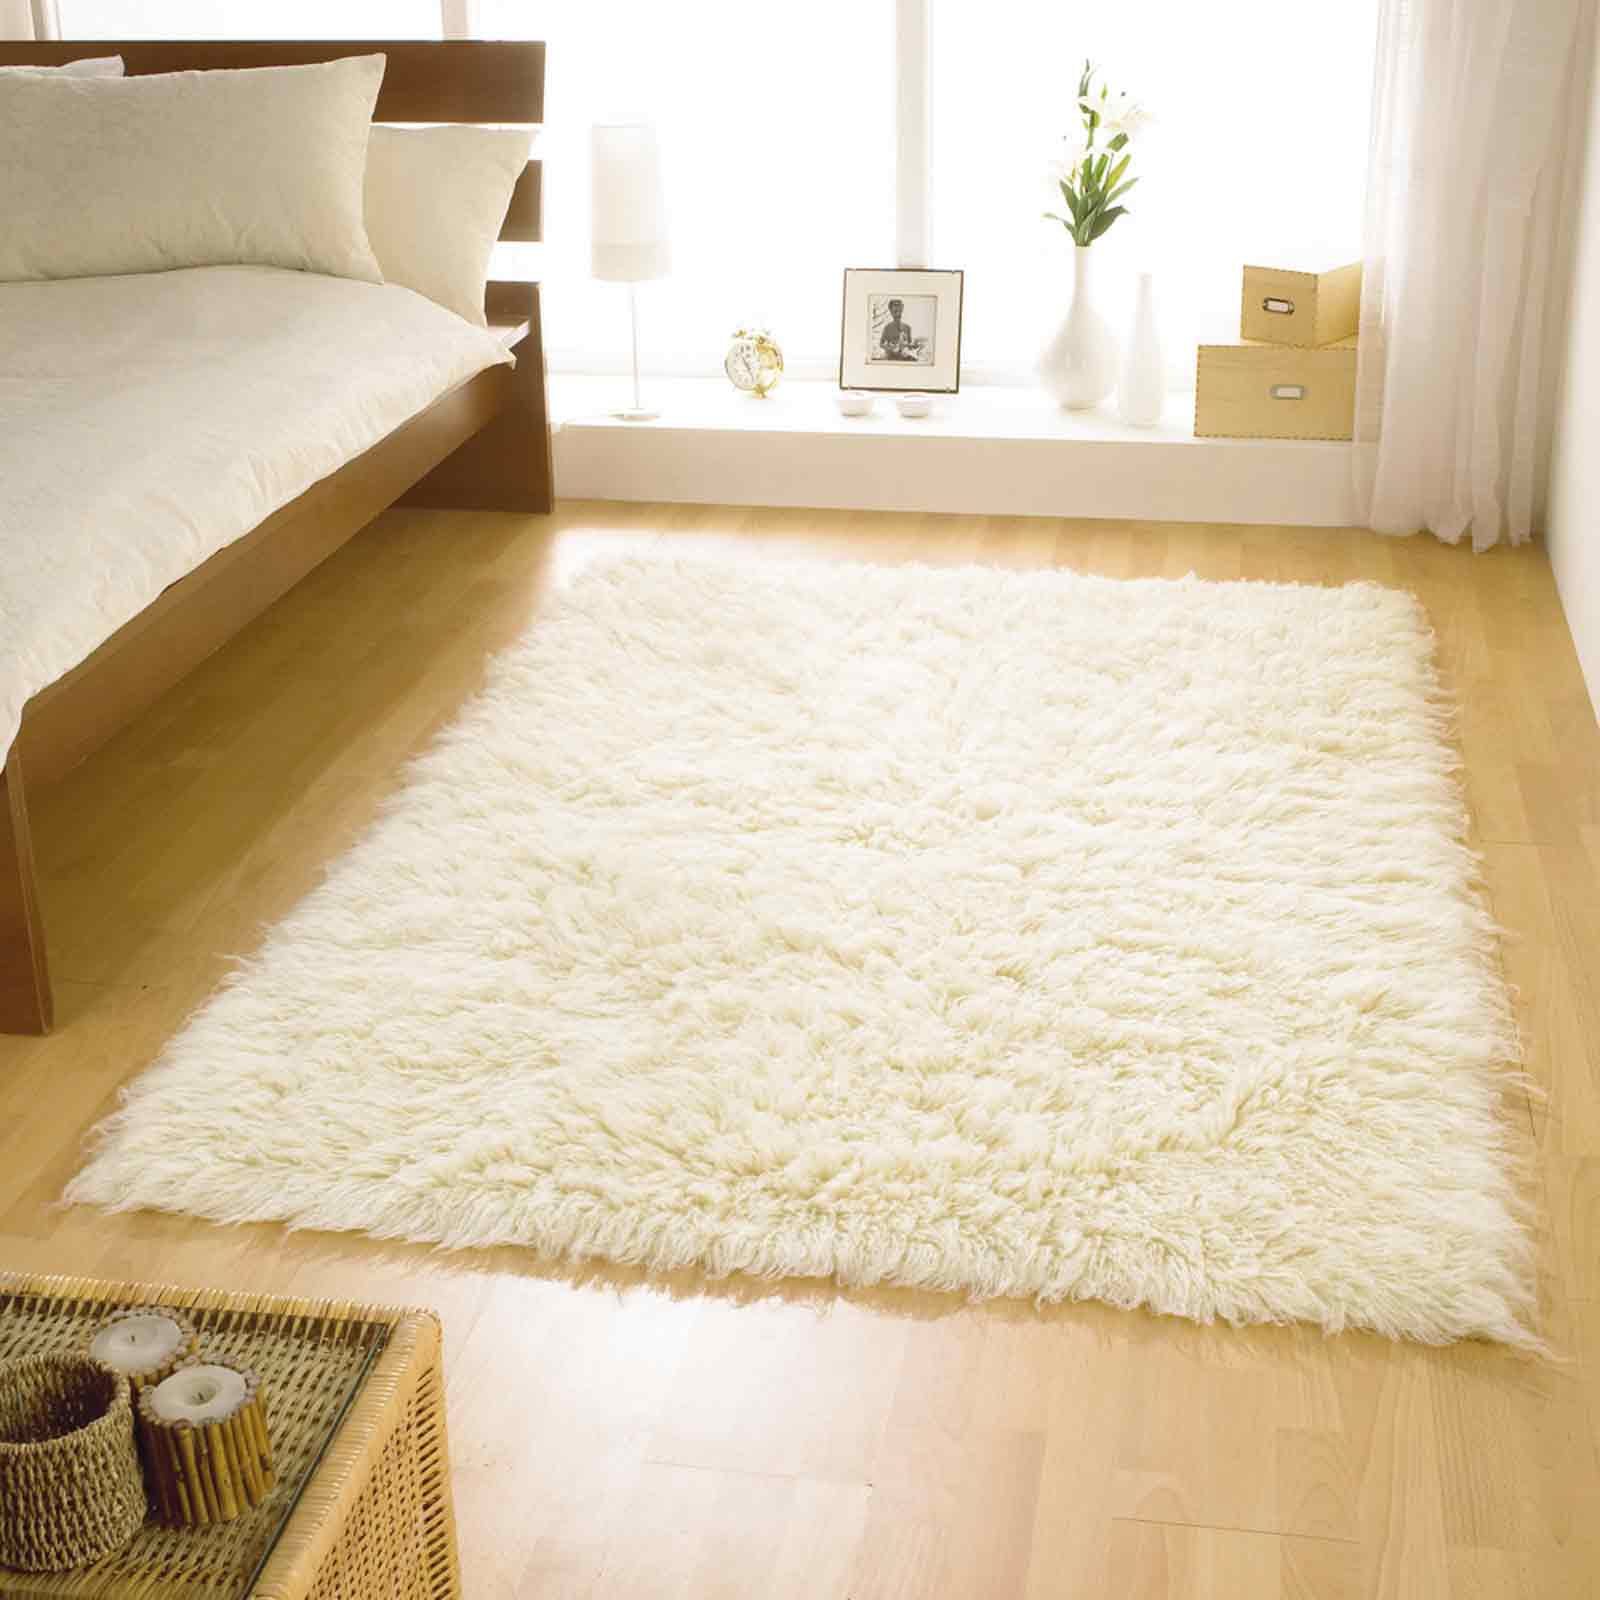 shaggy rugs | 1000's of styles with free delivery at the rug seller